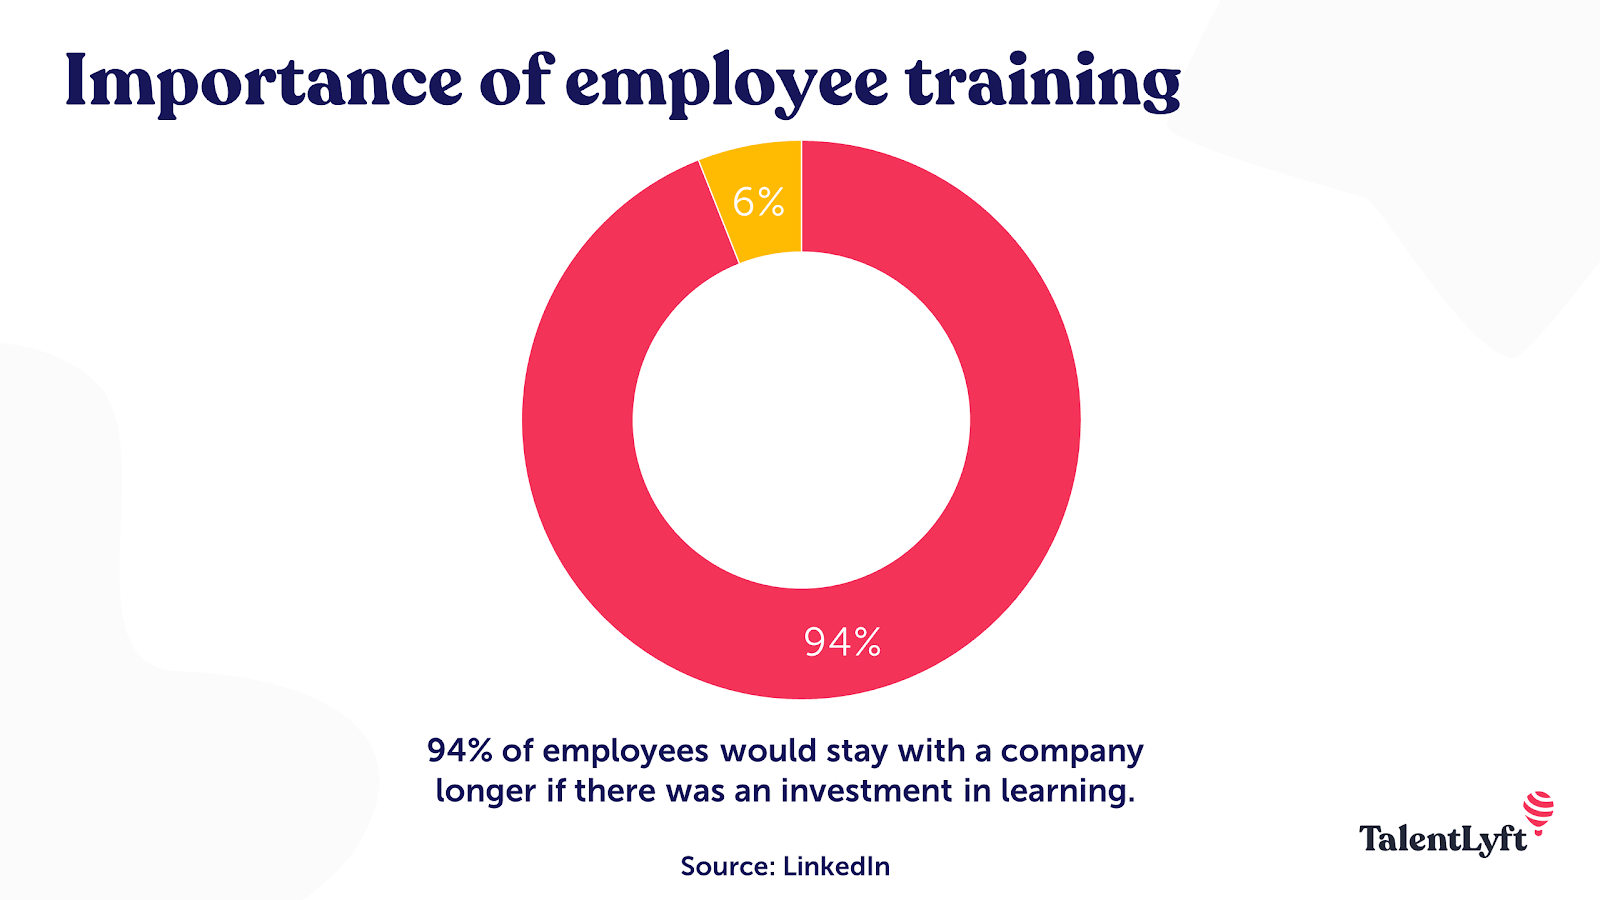 Importance of employee training